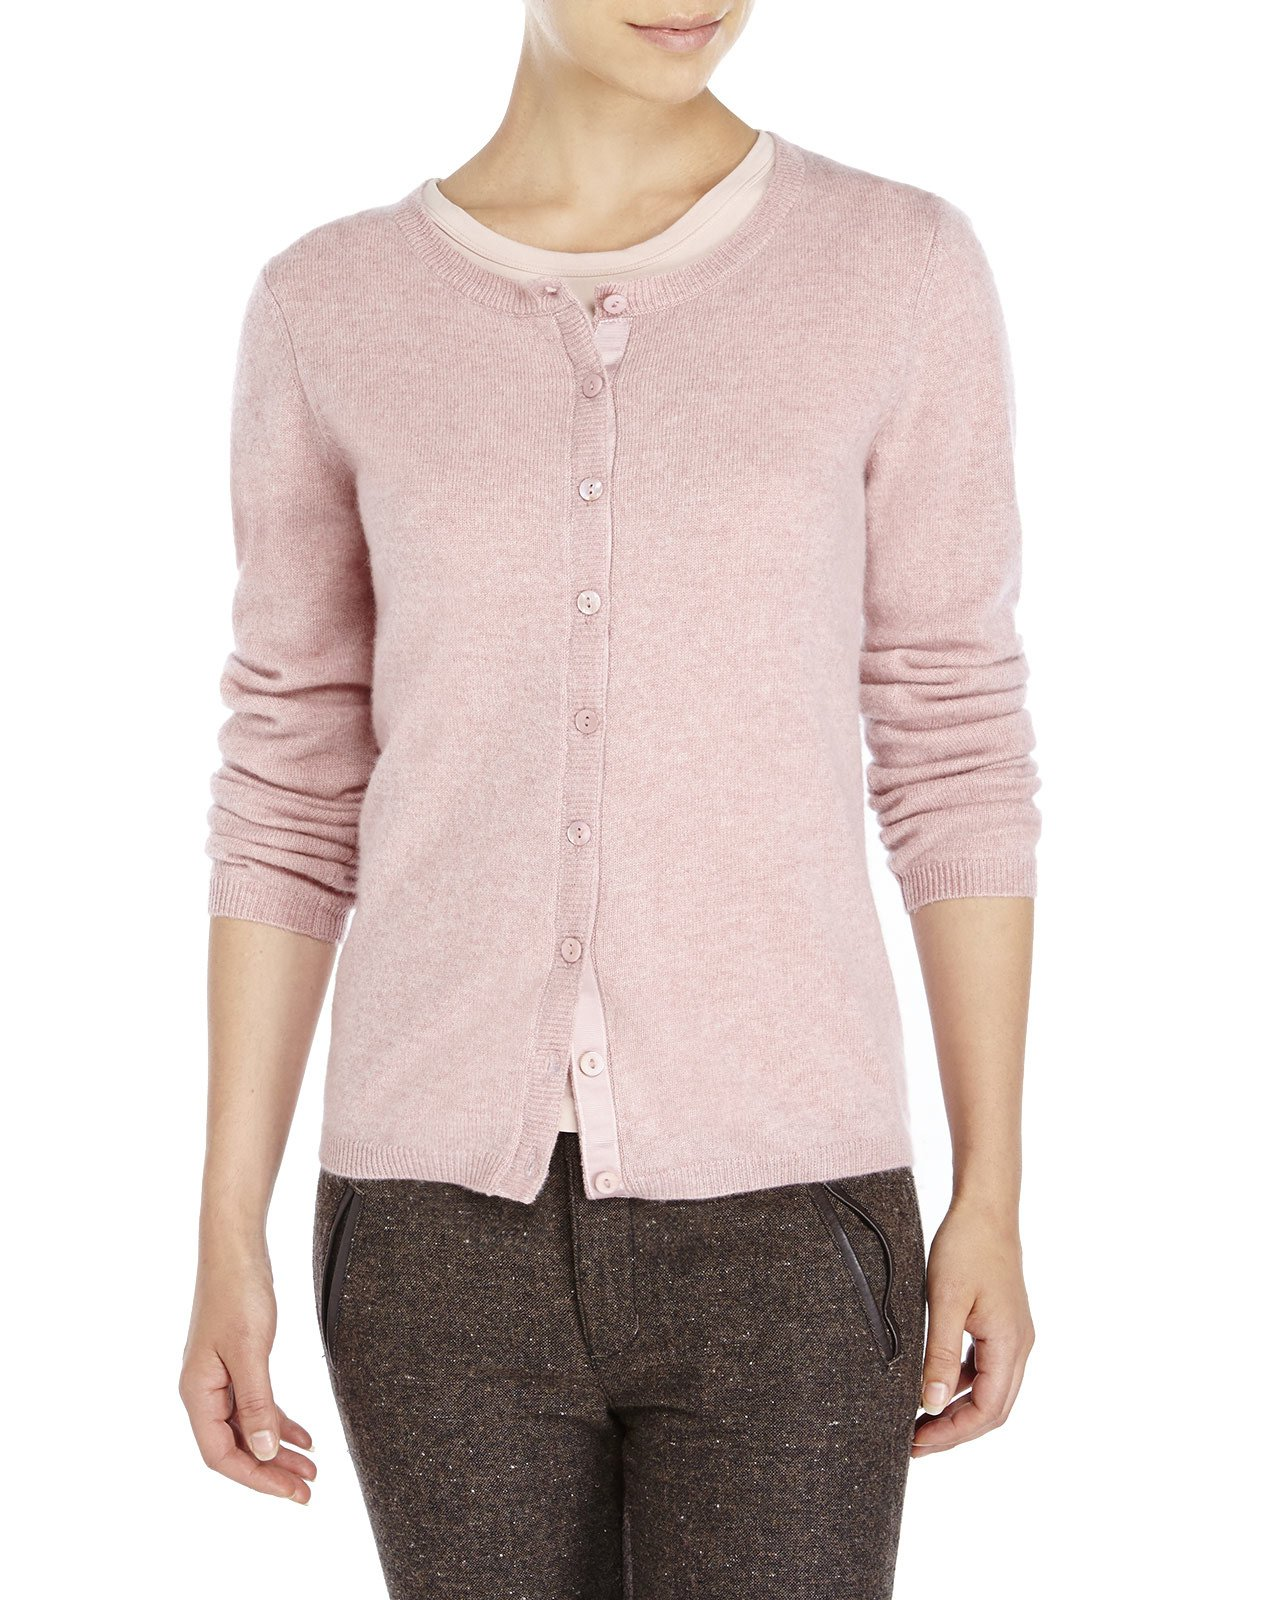 Qi Crew Neck Knit Cashmere Cardigan in Pink | Lyst